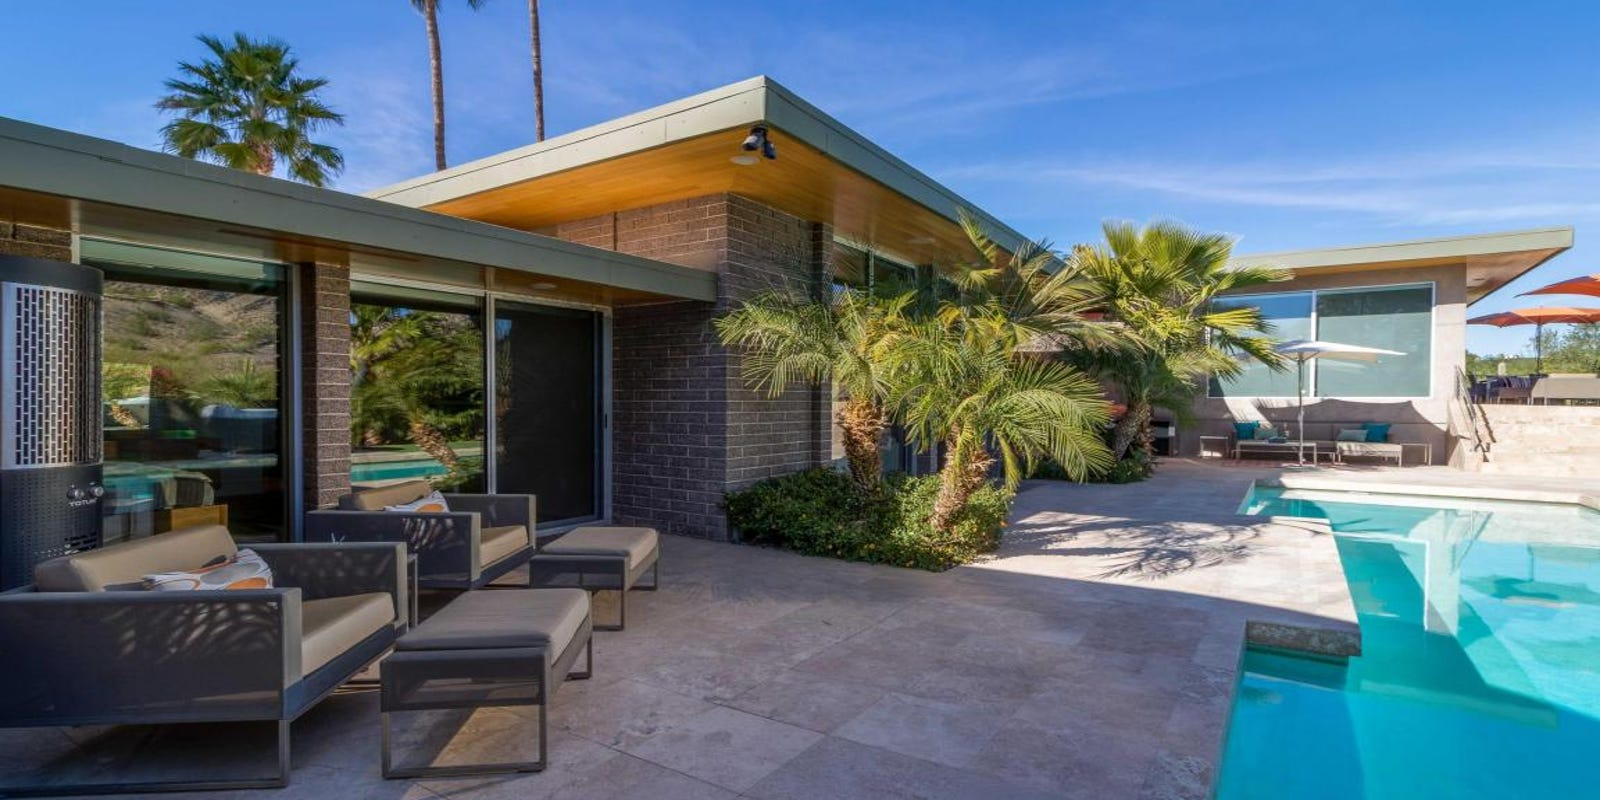 Paradise Valley mansion for sale used as set for porn website